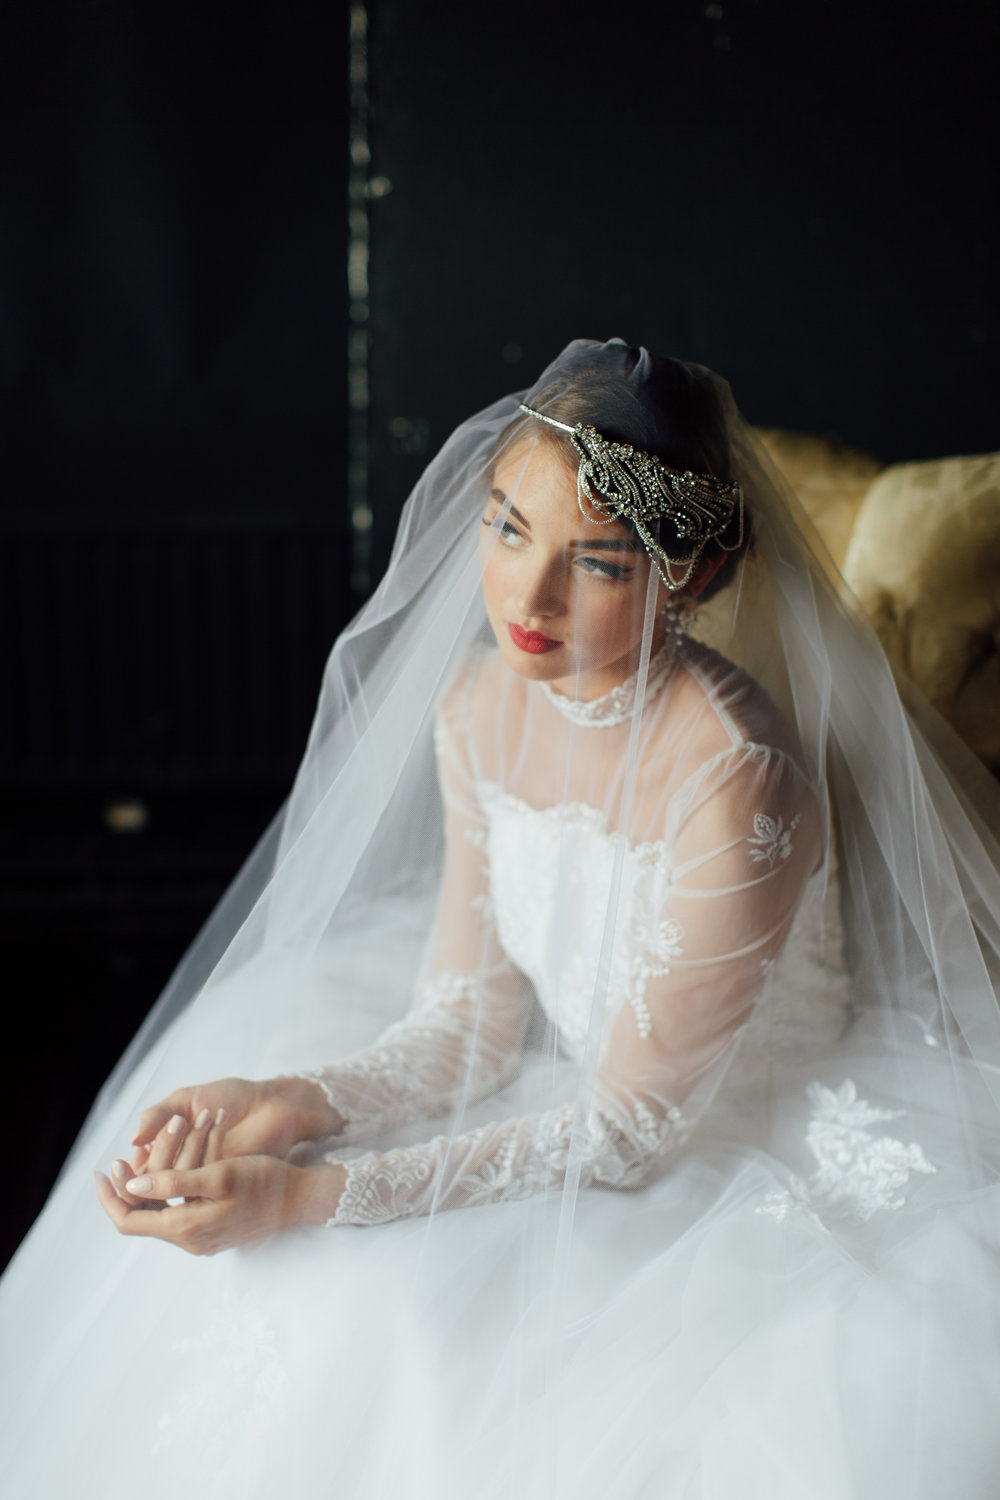 Tulle Veils   Dirty Fabulous has an extensive collection of beautifully soft, new tulle veils. Whether you desire a simple, diaphanous veil or intricate, lace trimmed show-stopper; we have modern veils to suit all tastes. Short, fingertip, elbow, chapel and cathedral lengths available.